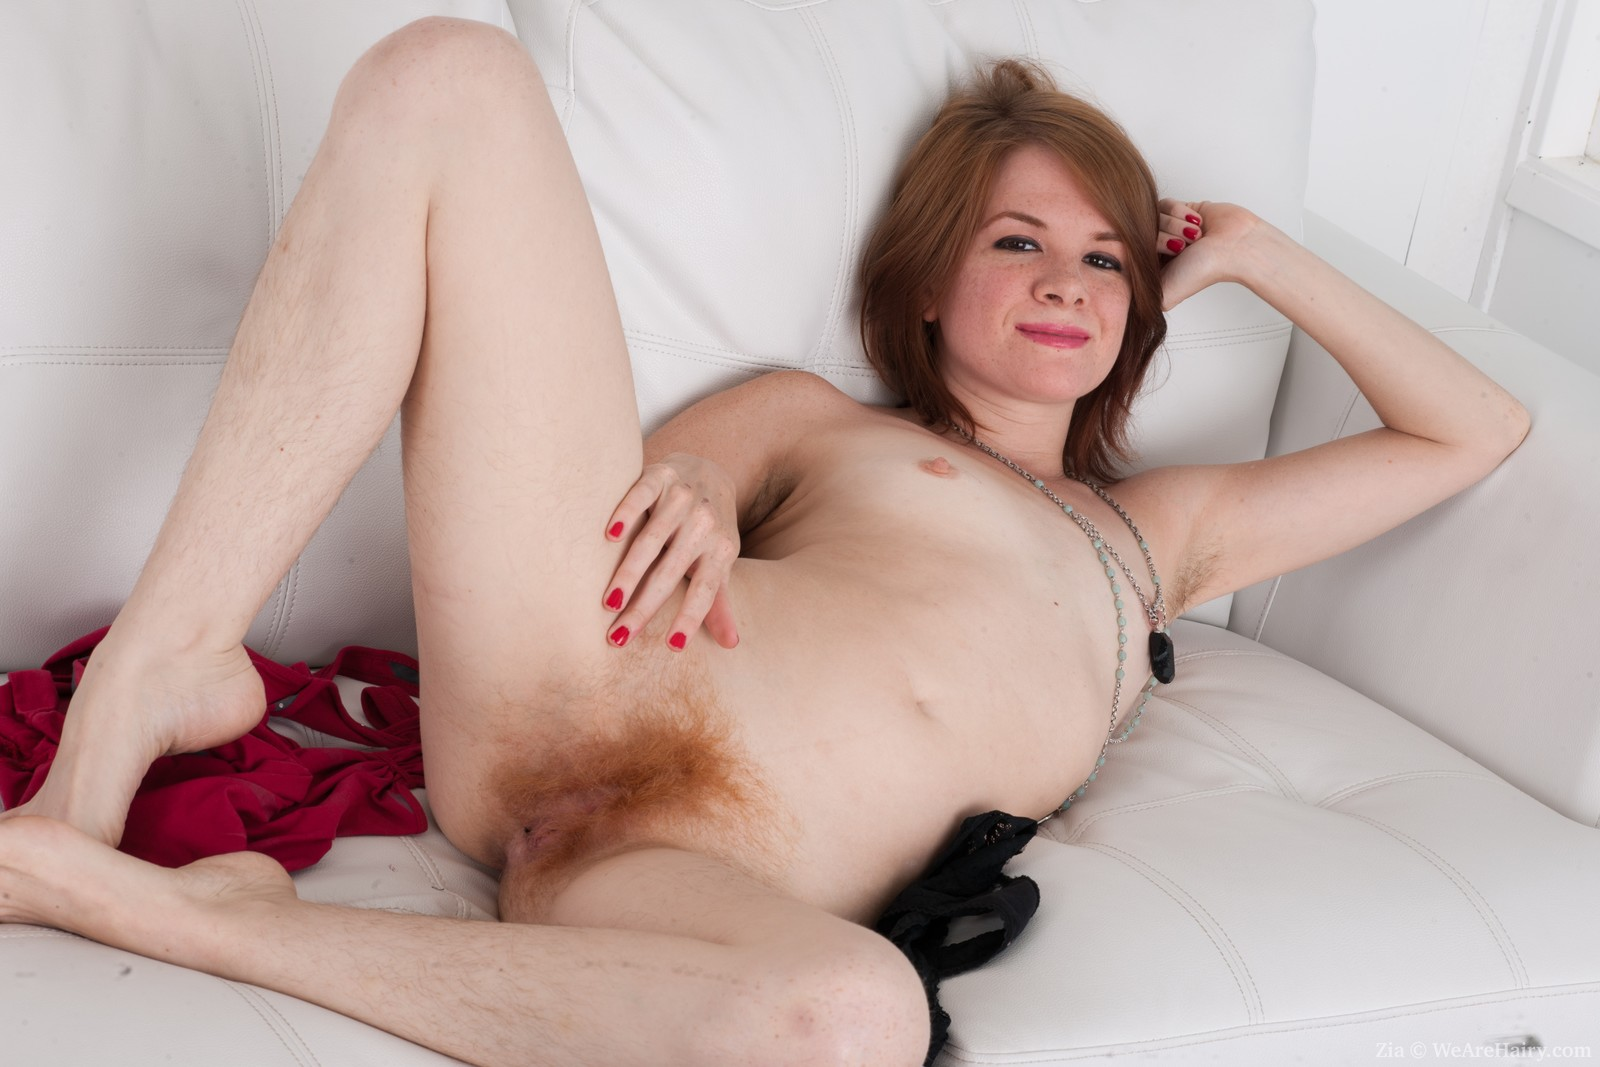 Hairy mature indian porn